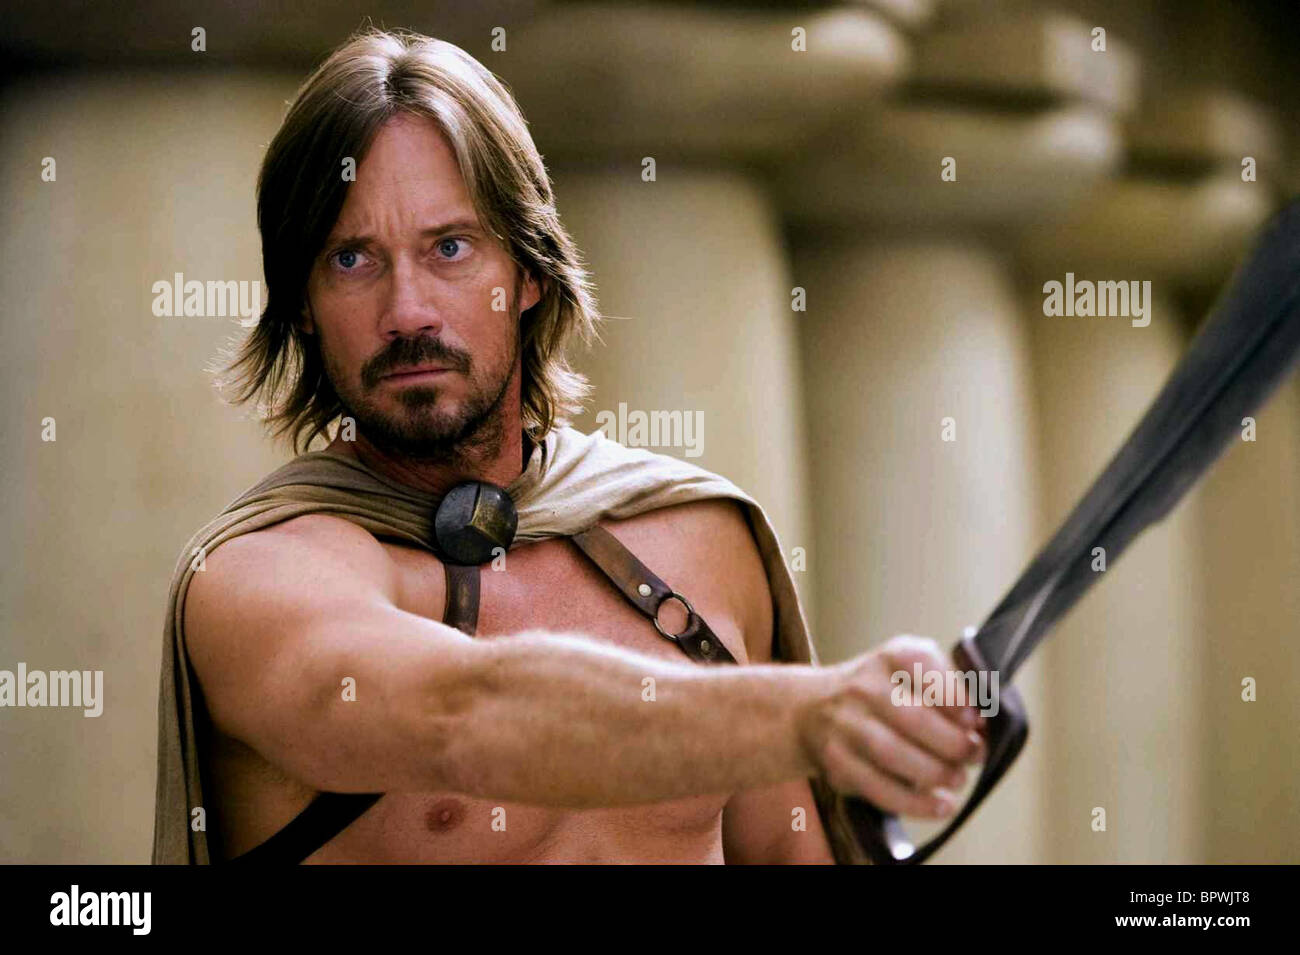 KEVIN SORBO MEET THE SPARTANS (2008) - Stock Image